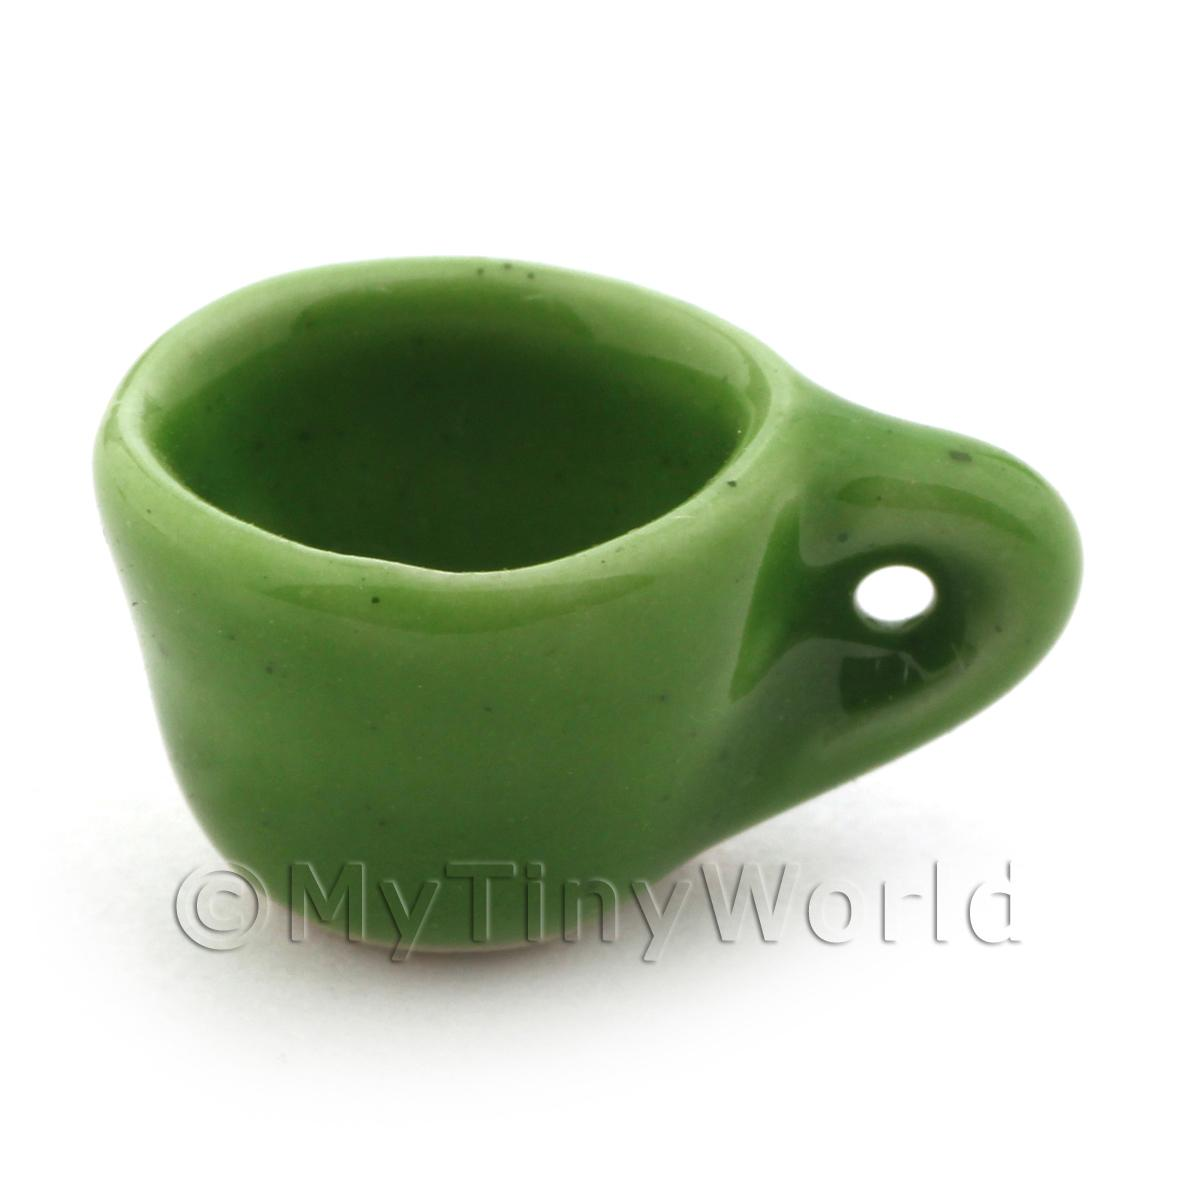 11mm Dolls House Miniature Green Coffee Cup